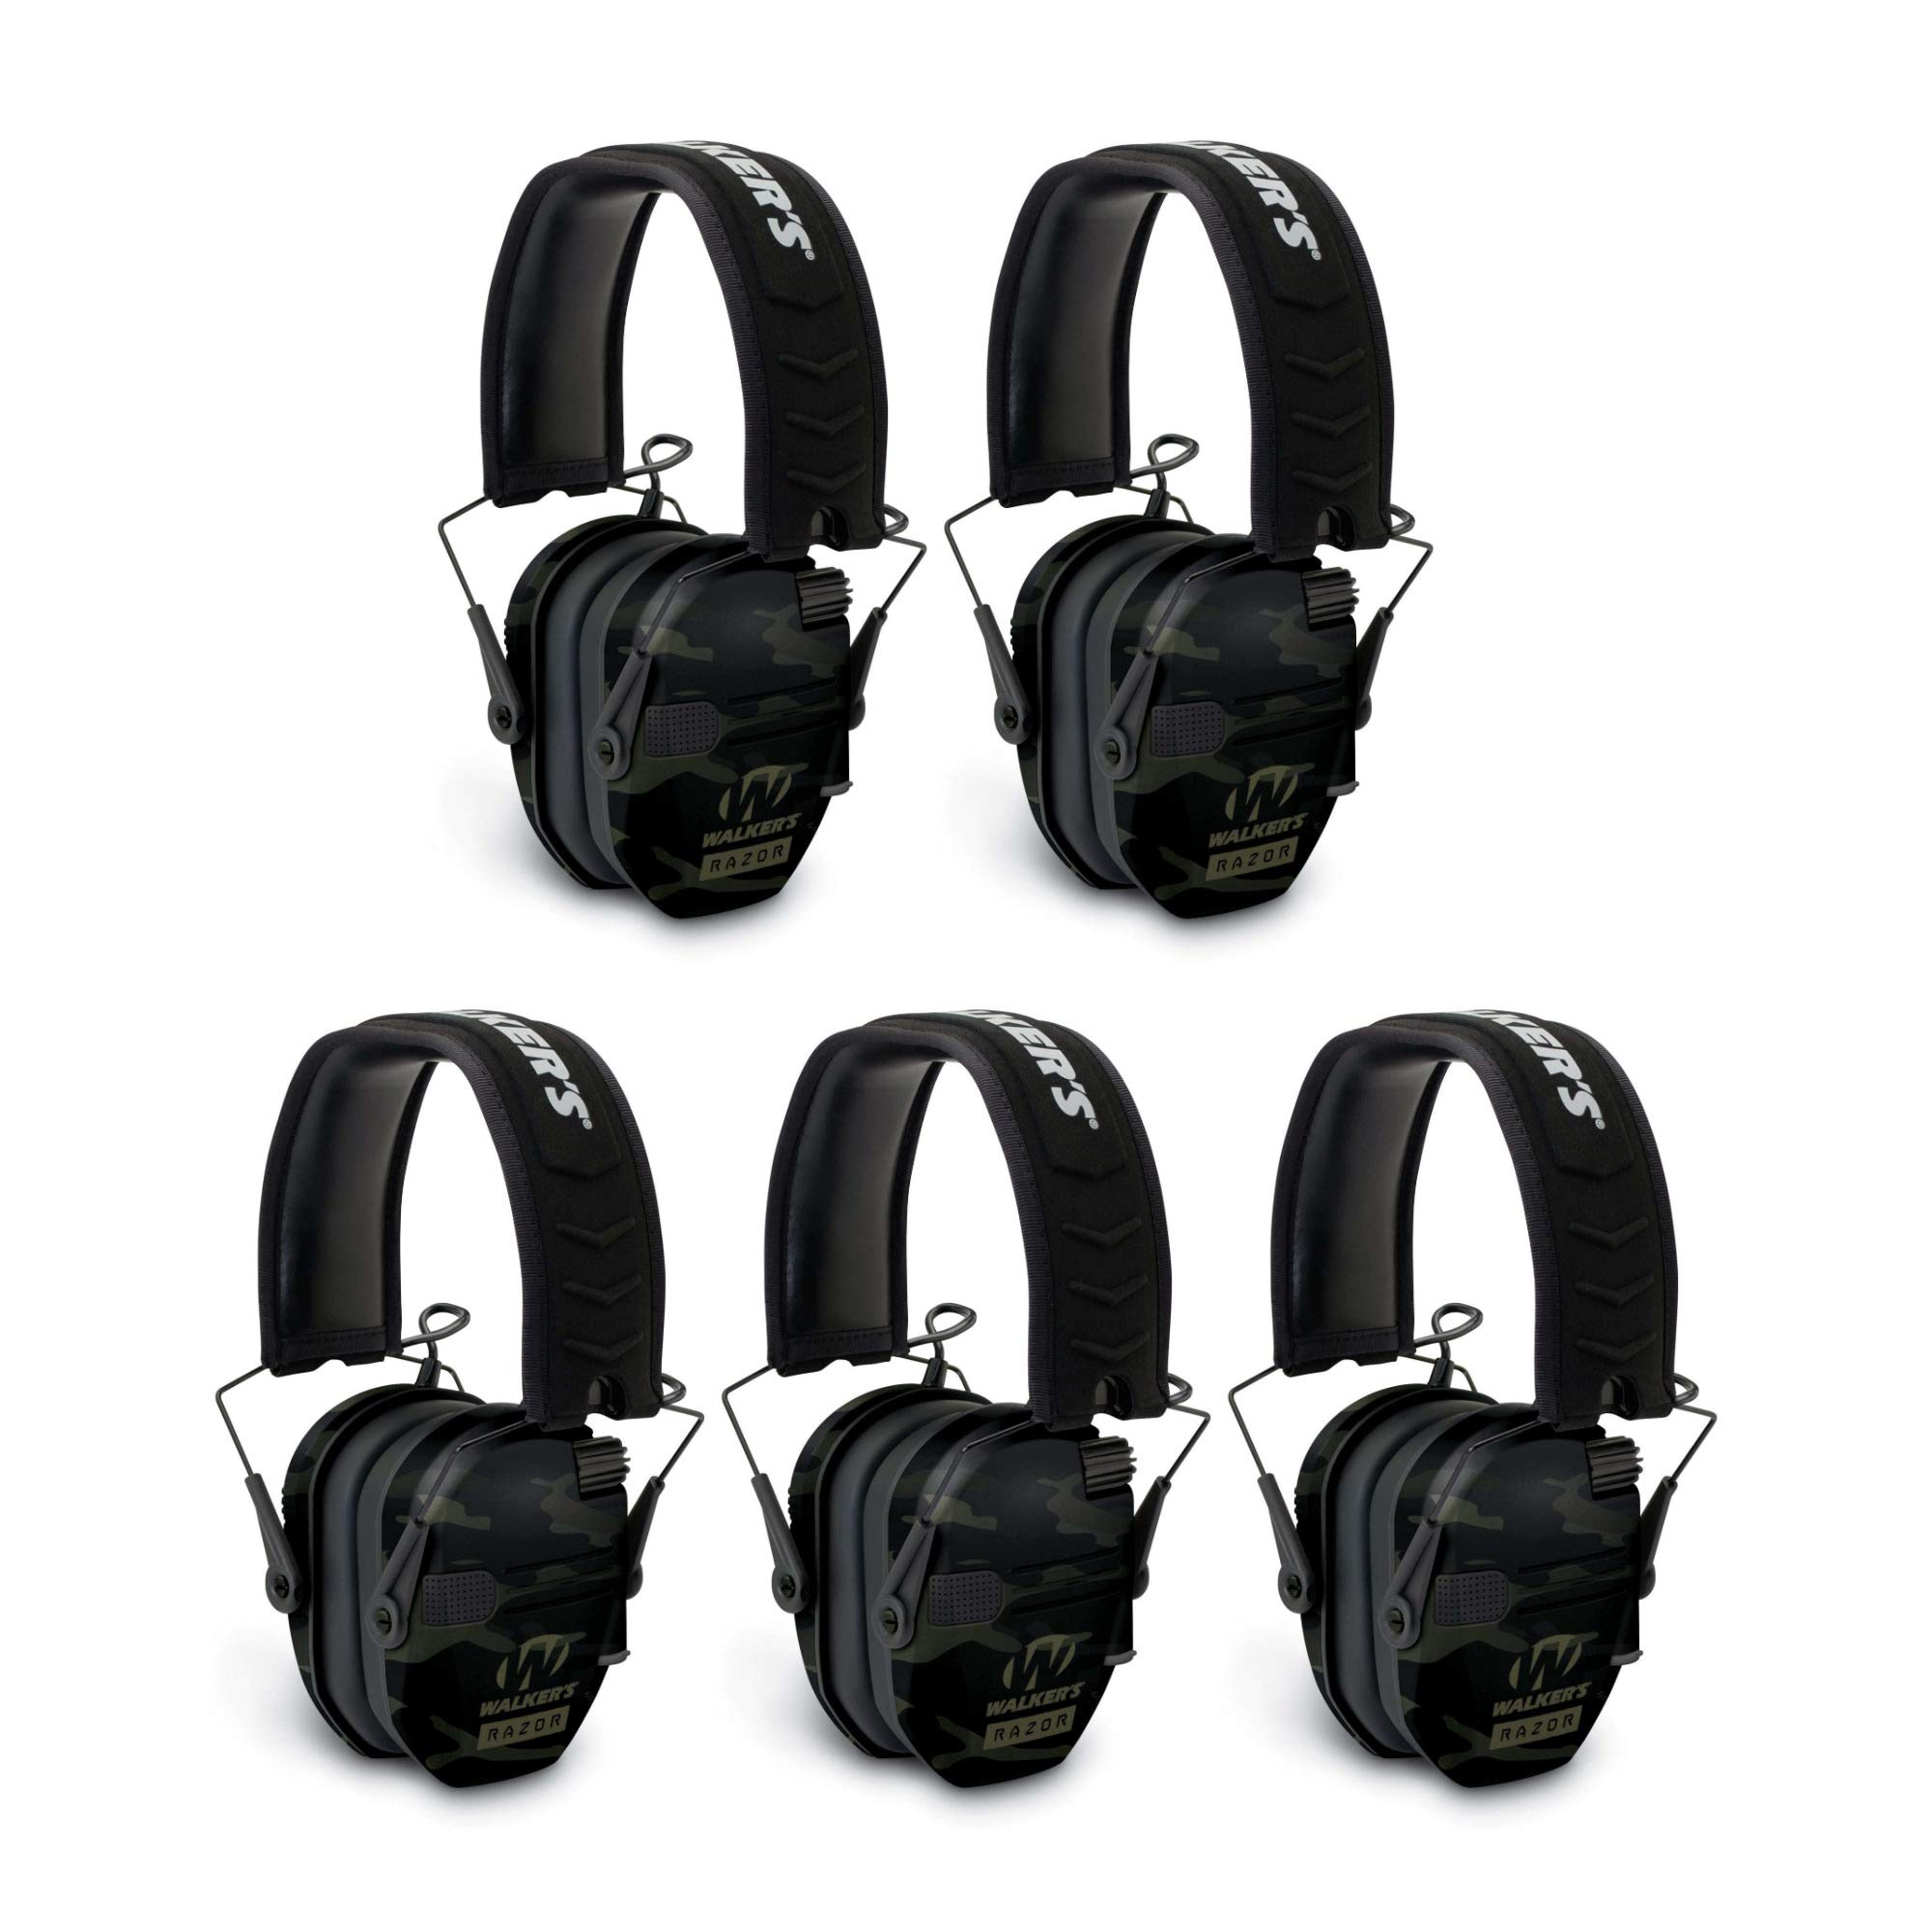 Walkers Razor Slim Electronic Shooting Muffs 5-Pack, Multi cam Camo Black (5 Items) by Walker's Game Ear